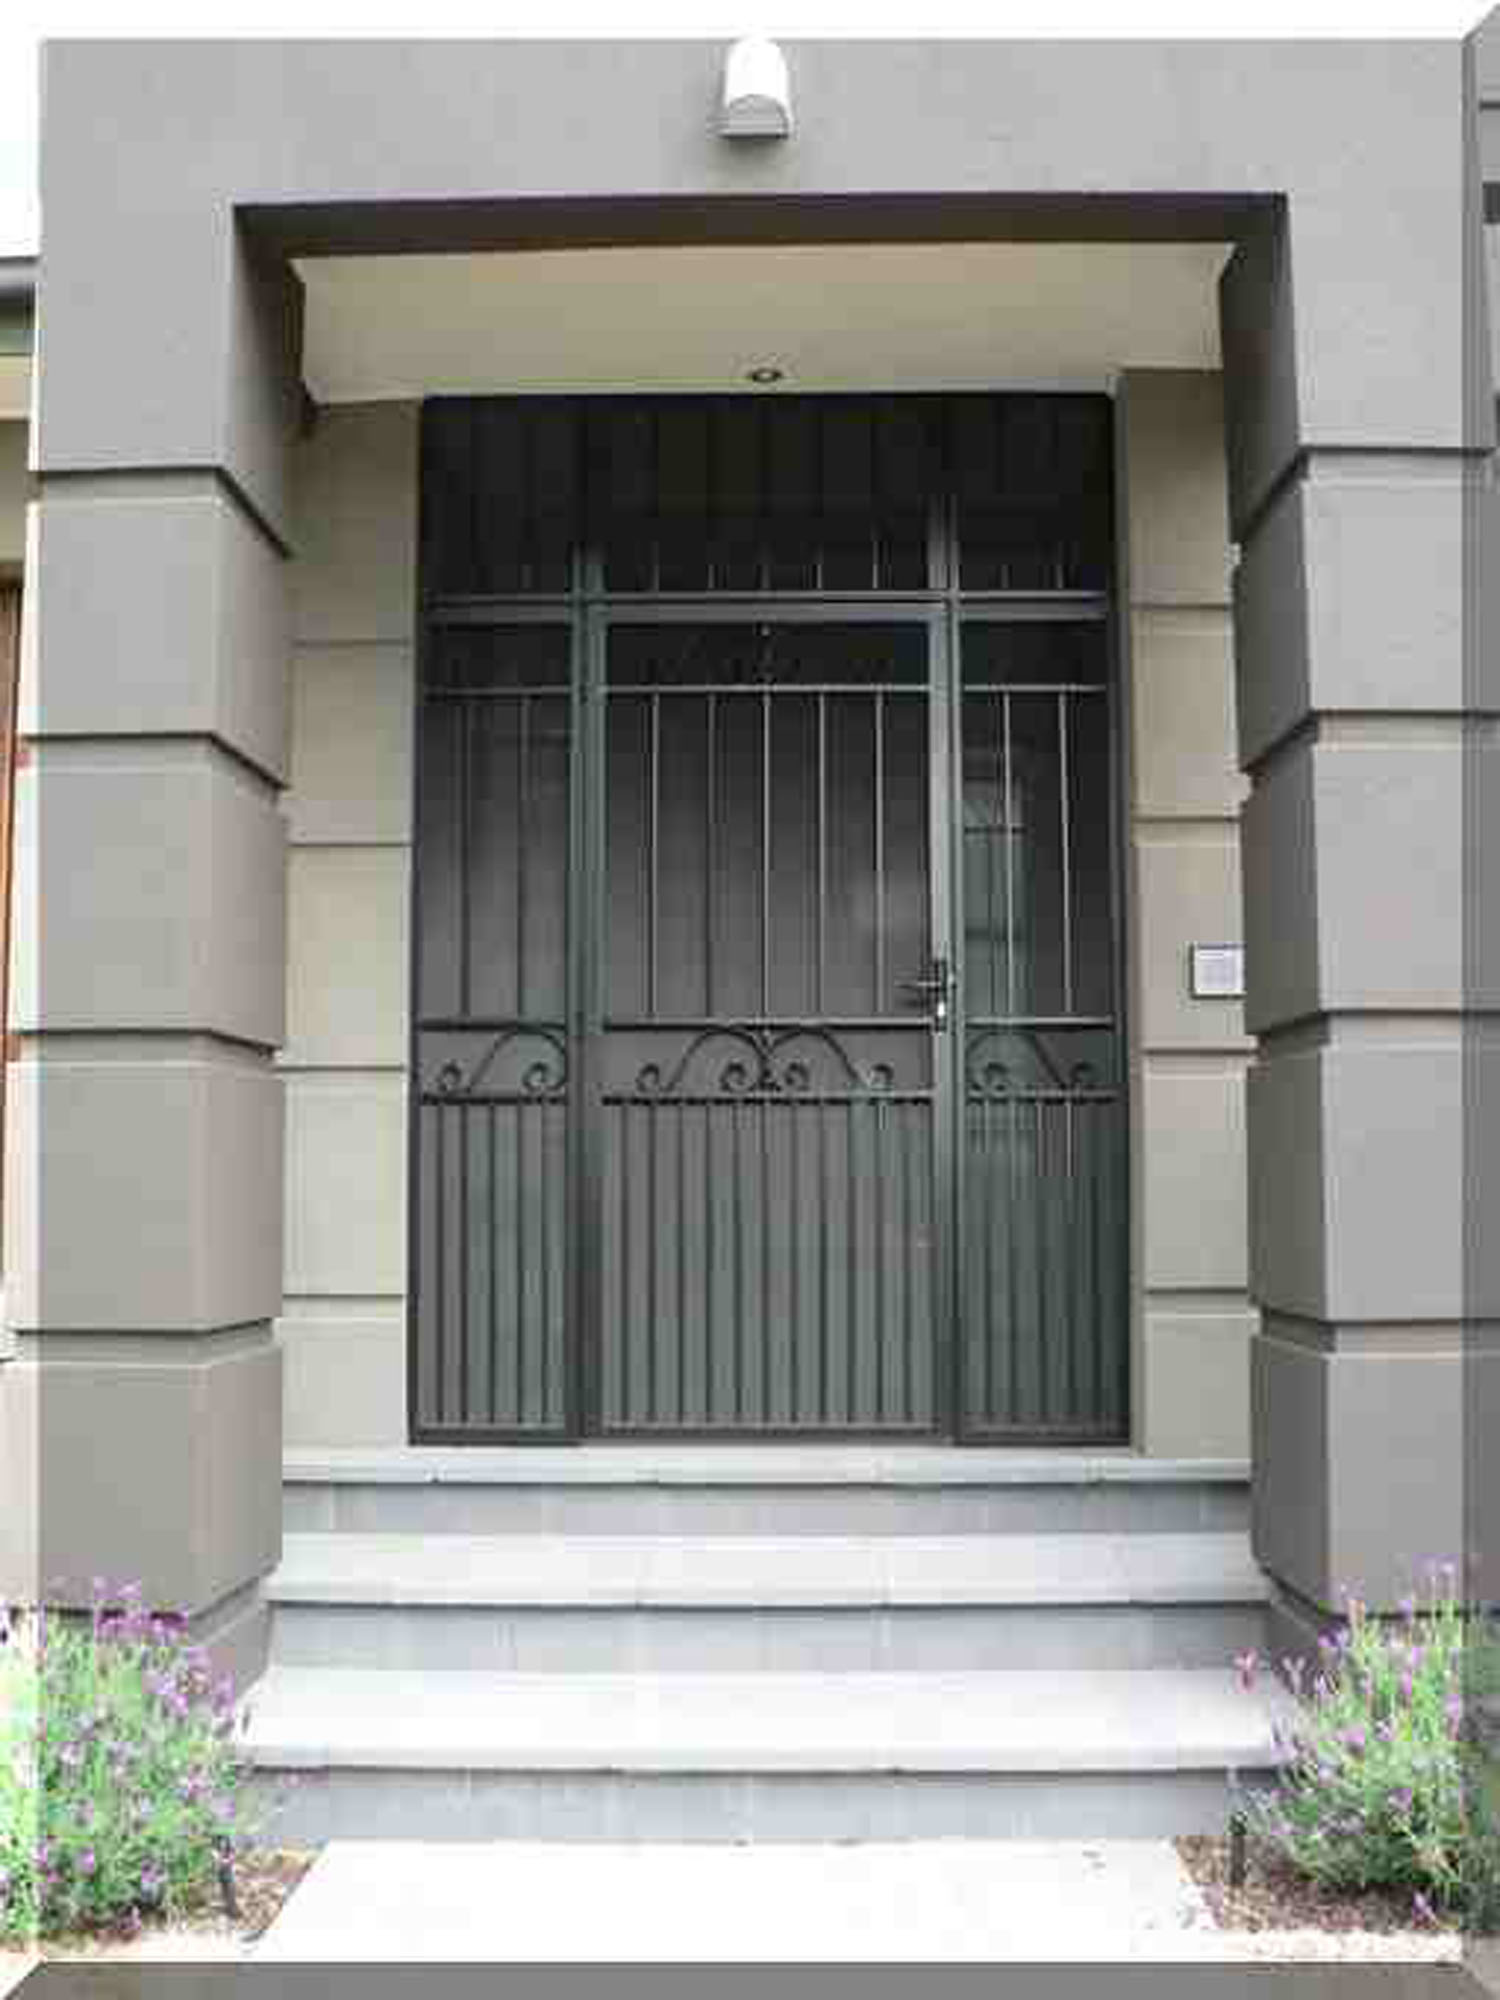 2000 #597C4F Security Doors save image Security Gates For Doors Residential 7771500